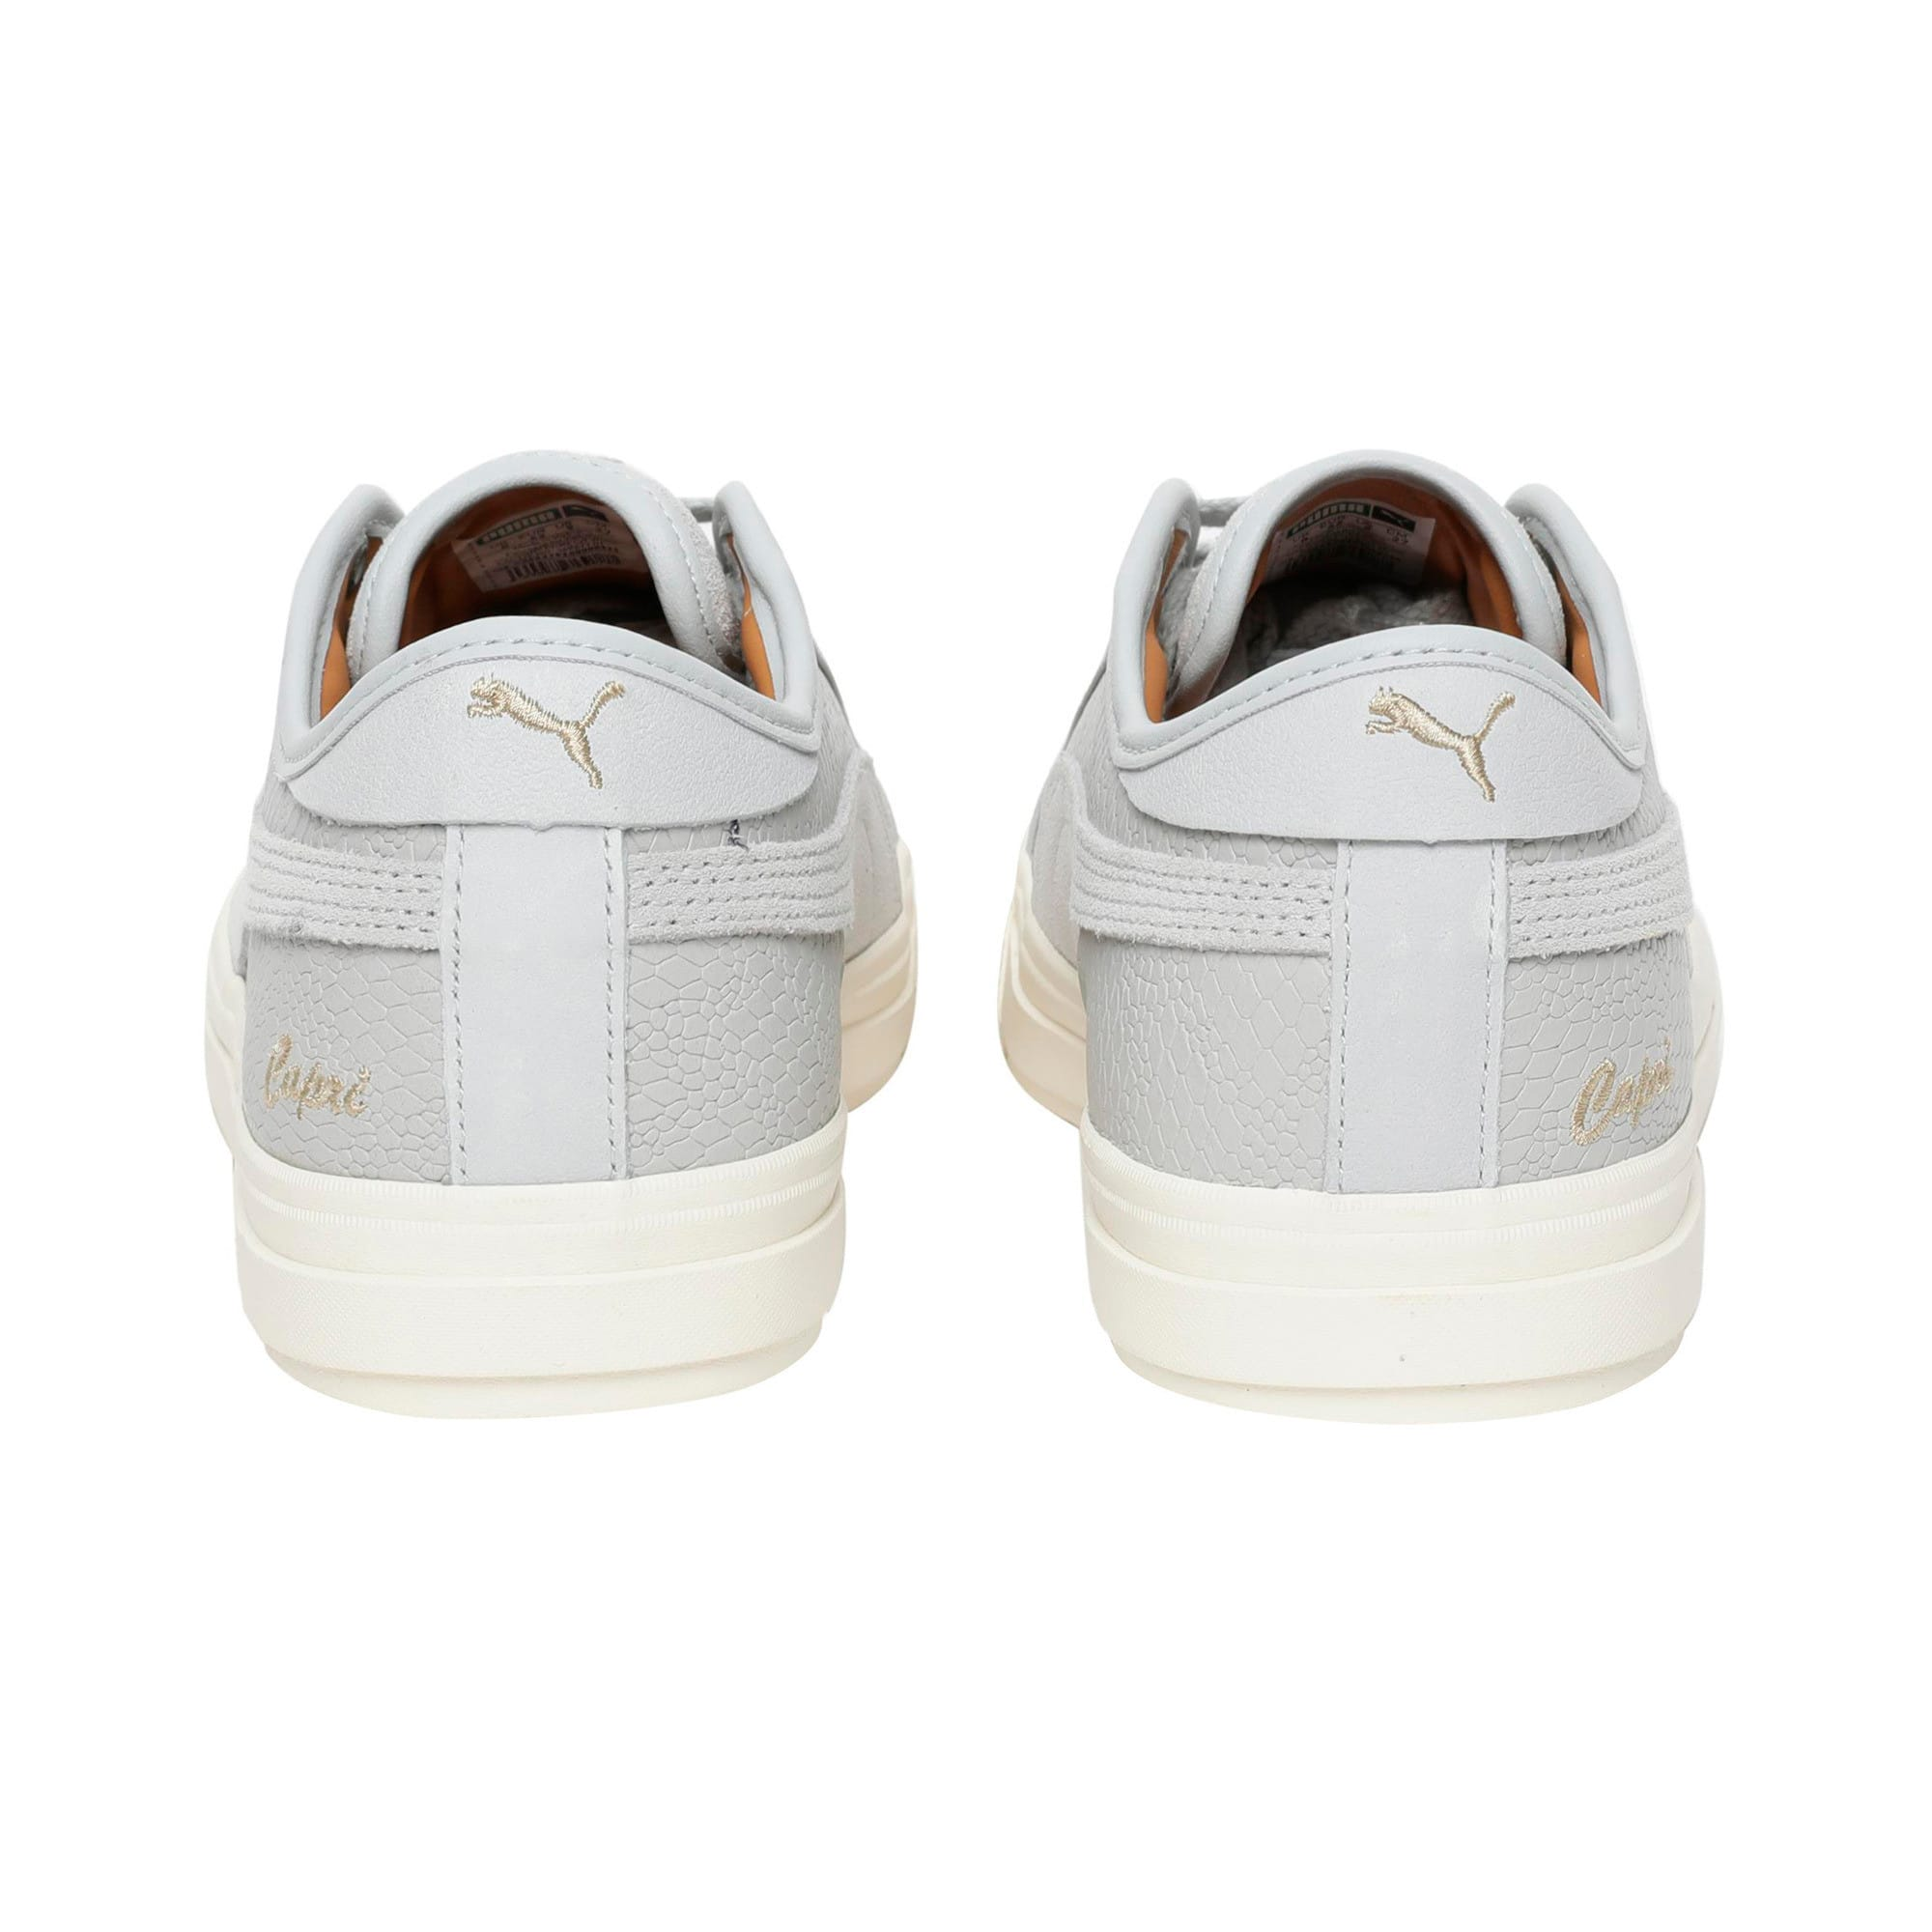 Thumbnail 3 of Capri Sneakers, GryViolt-GryViolet-WhisprWht, medium-IND